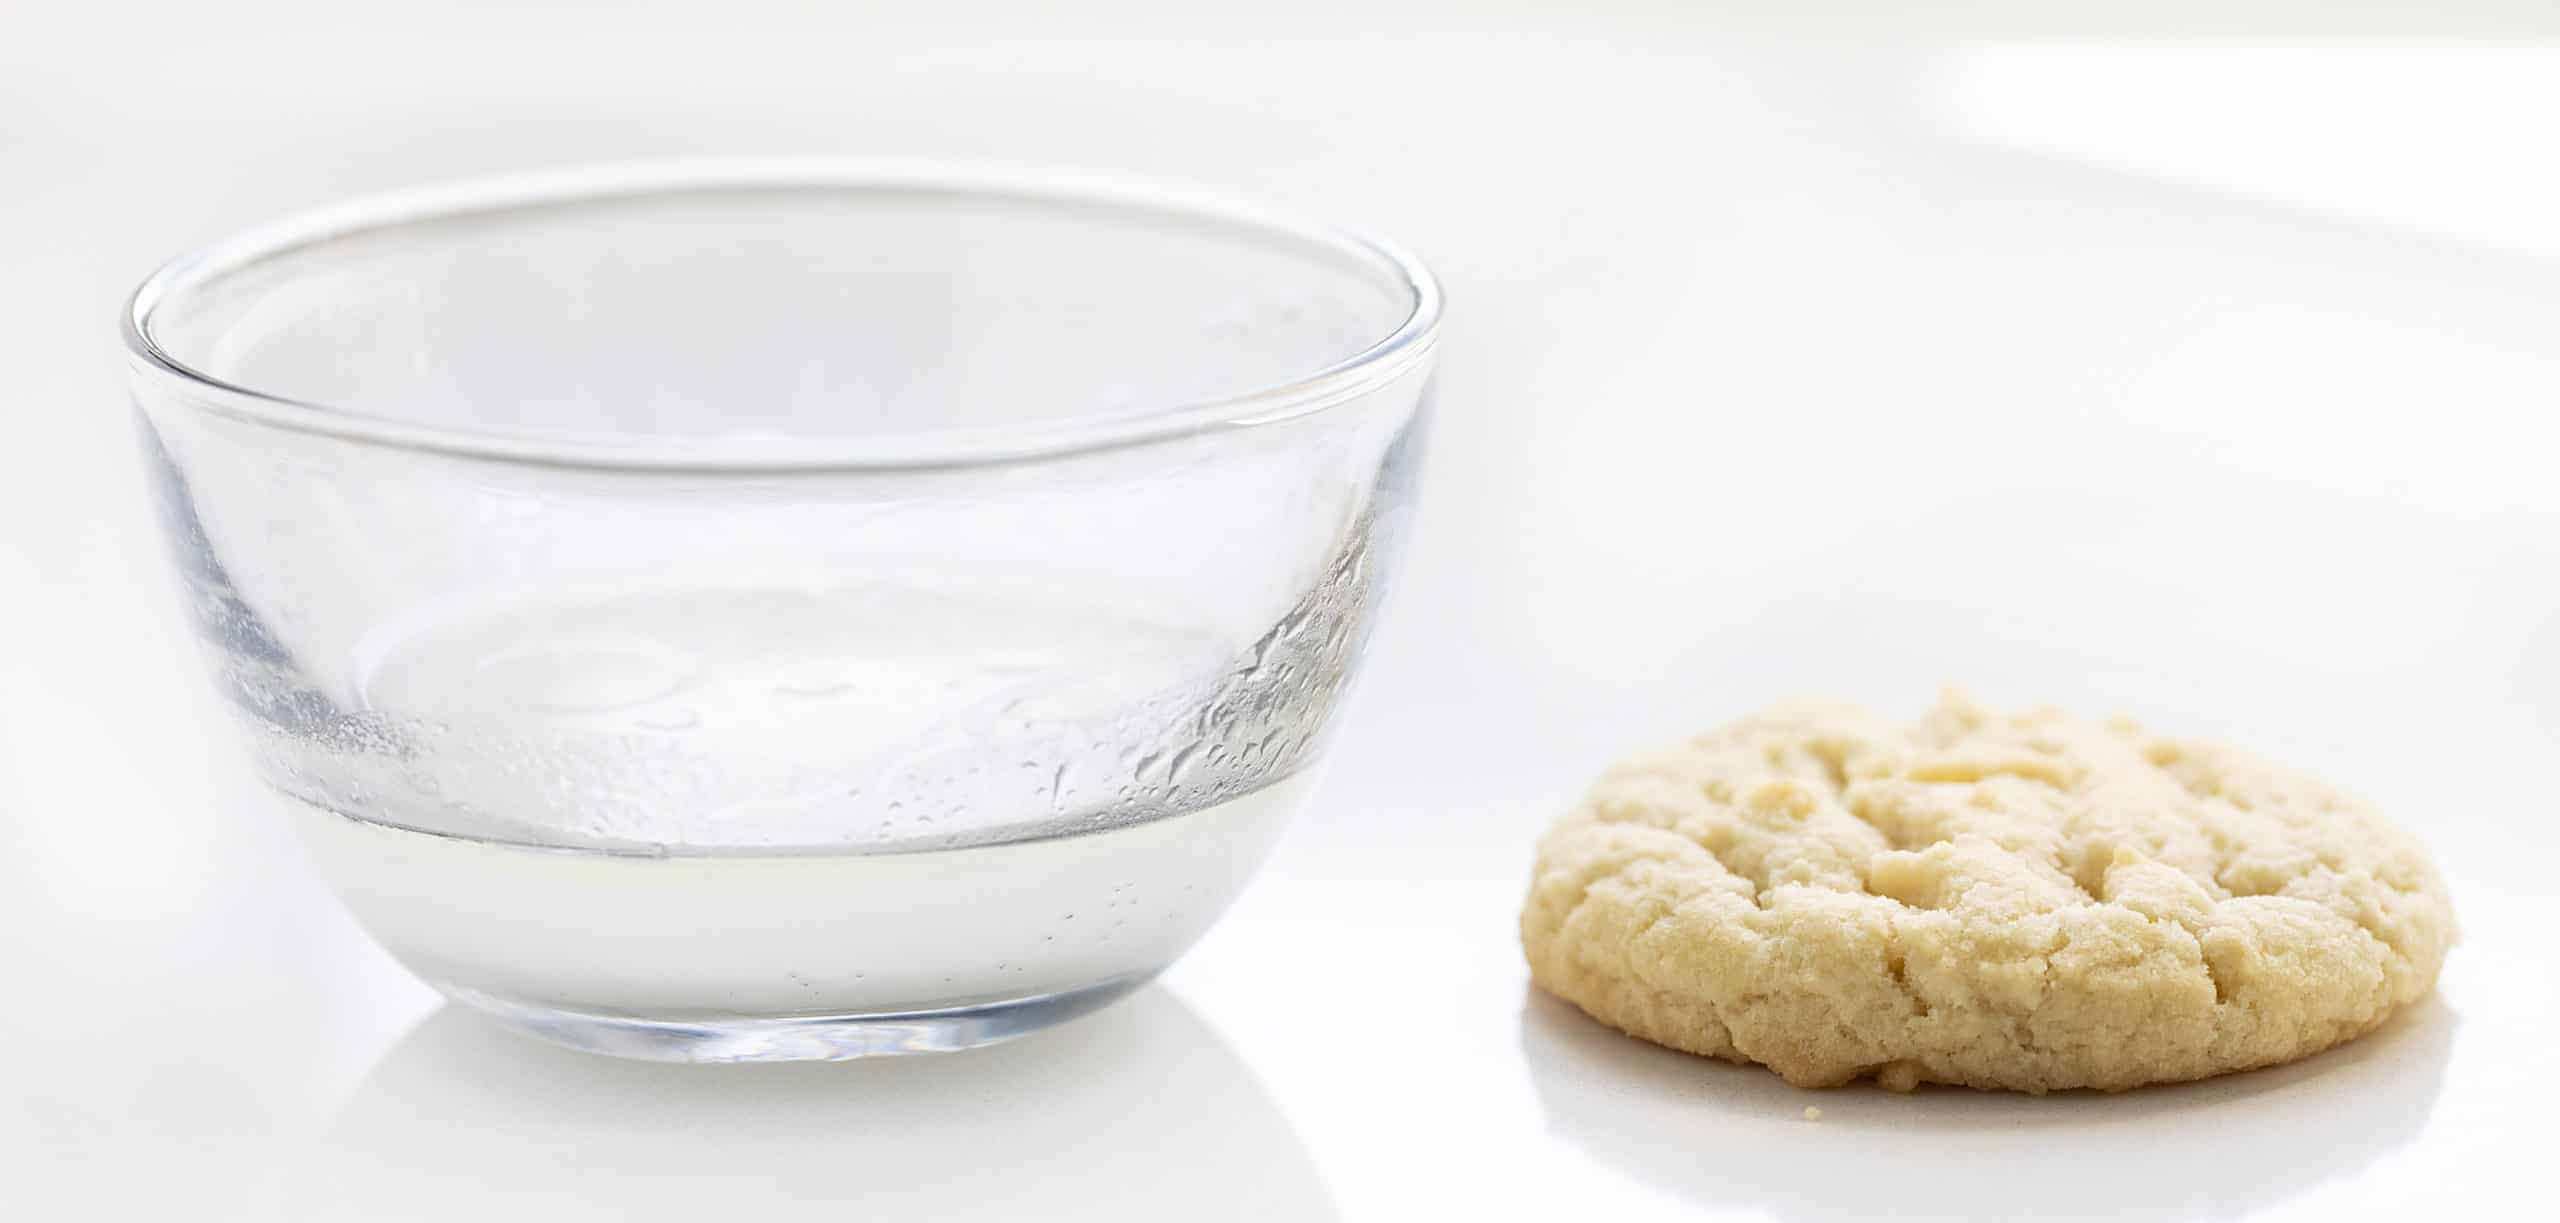 Baking Soda, Oil, and Water in a Bowl as an Egg Substitute